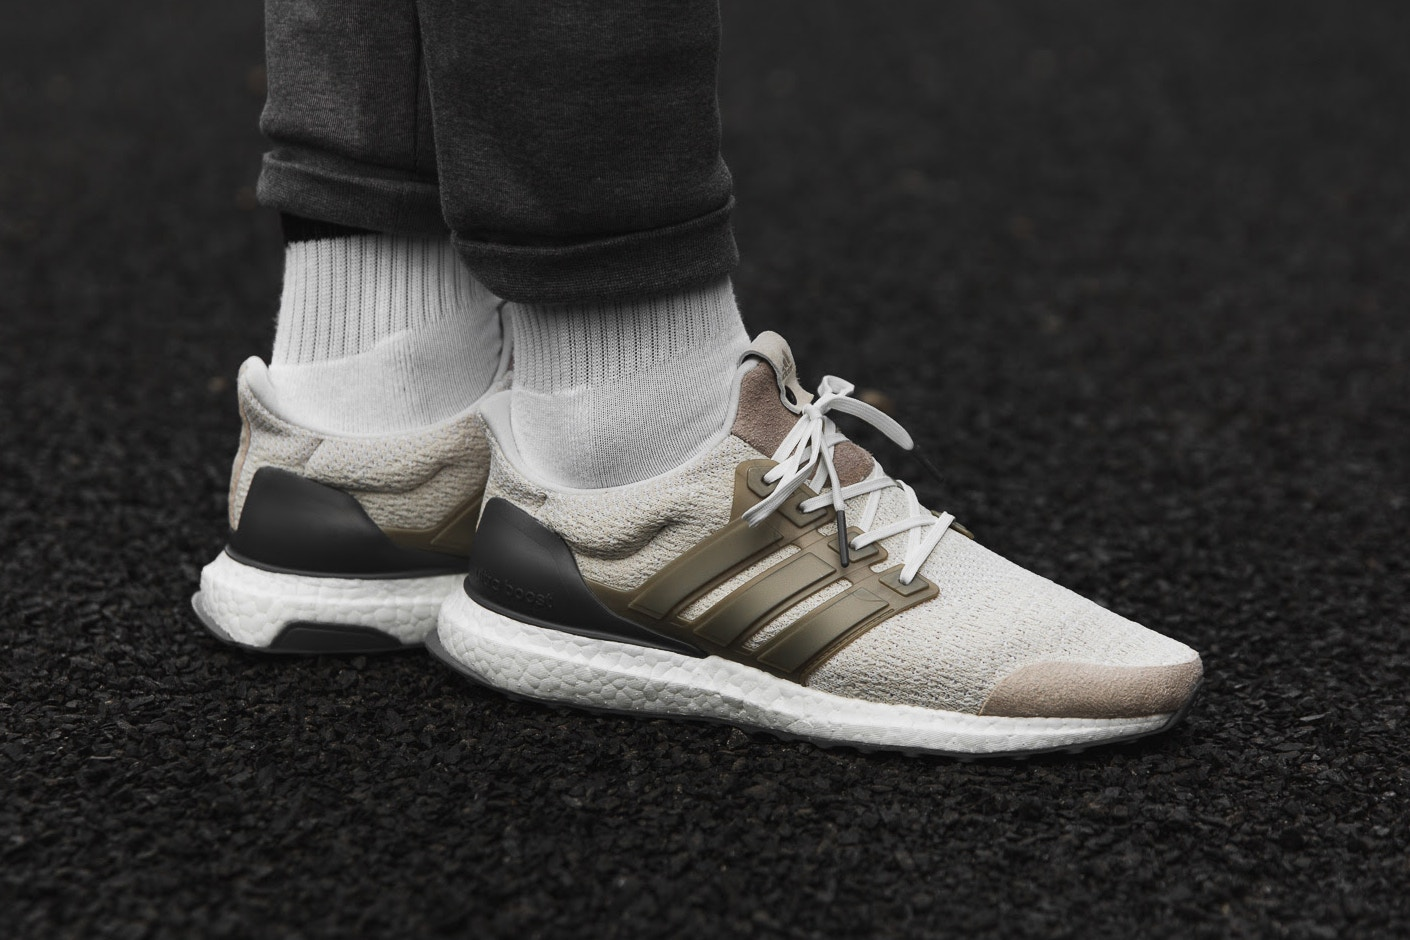 adidas Consortium UltraBOOST Lux White Chocolate Brown